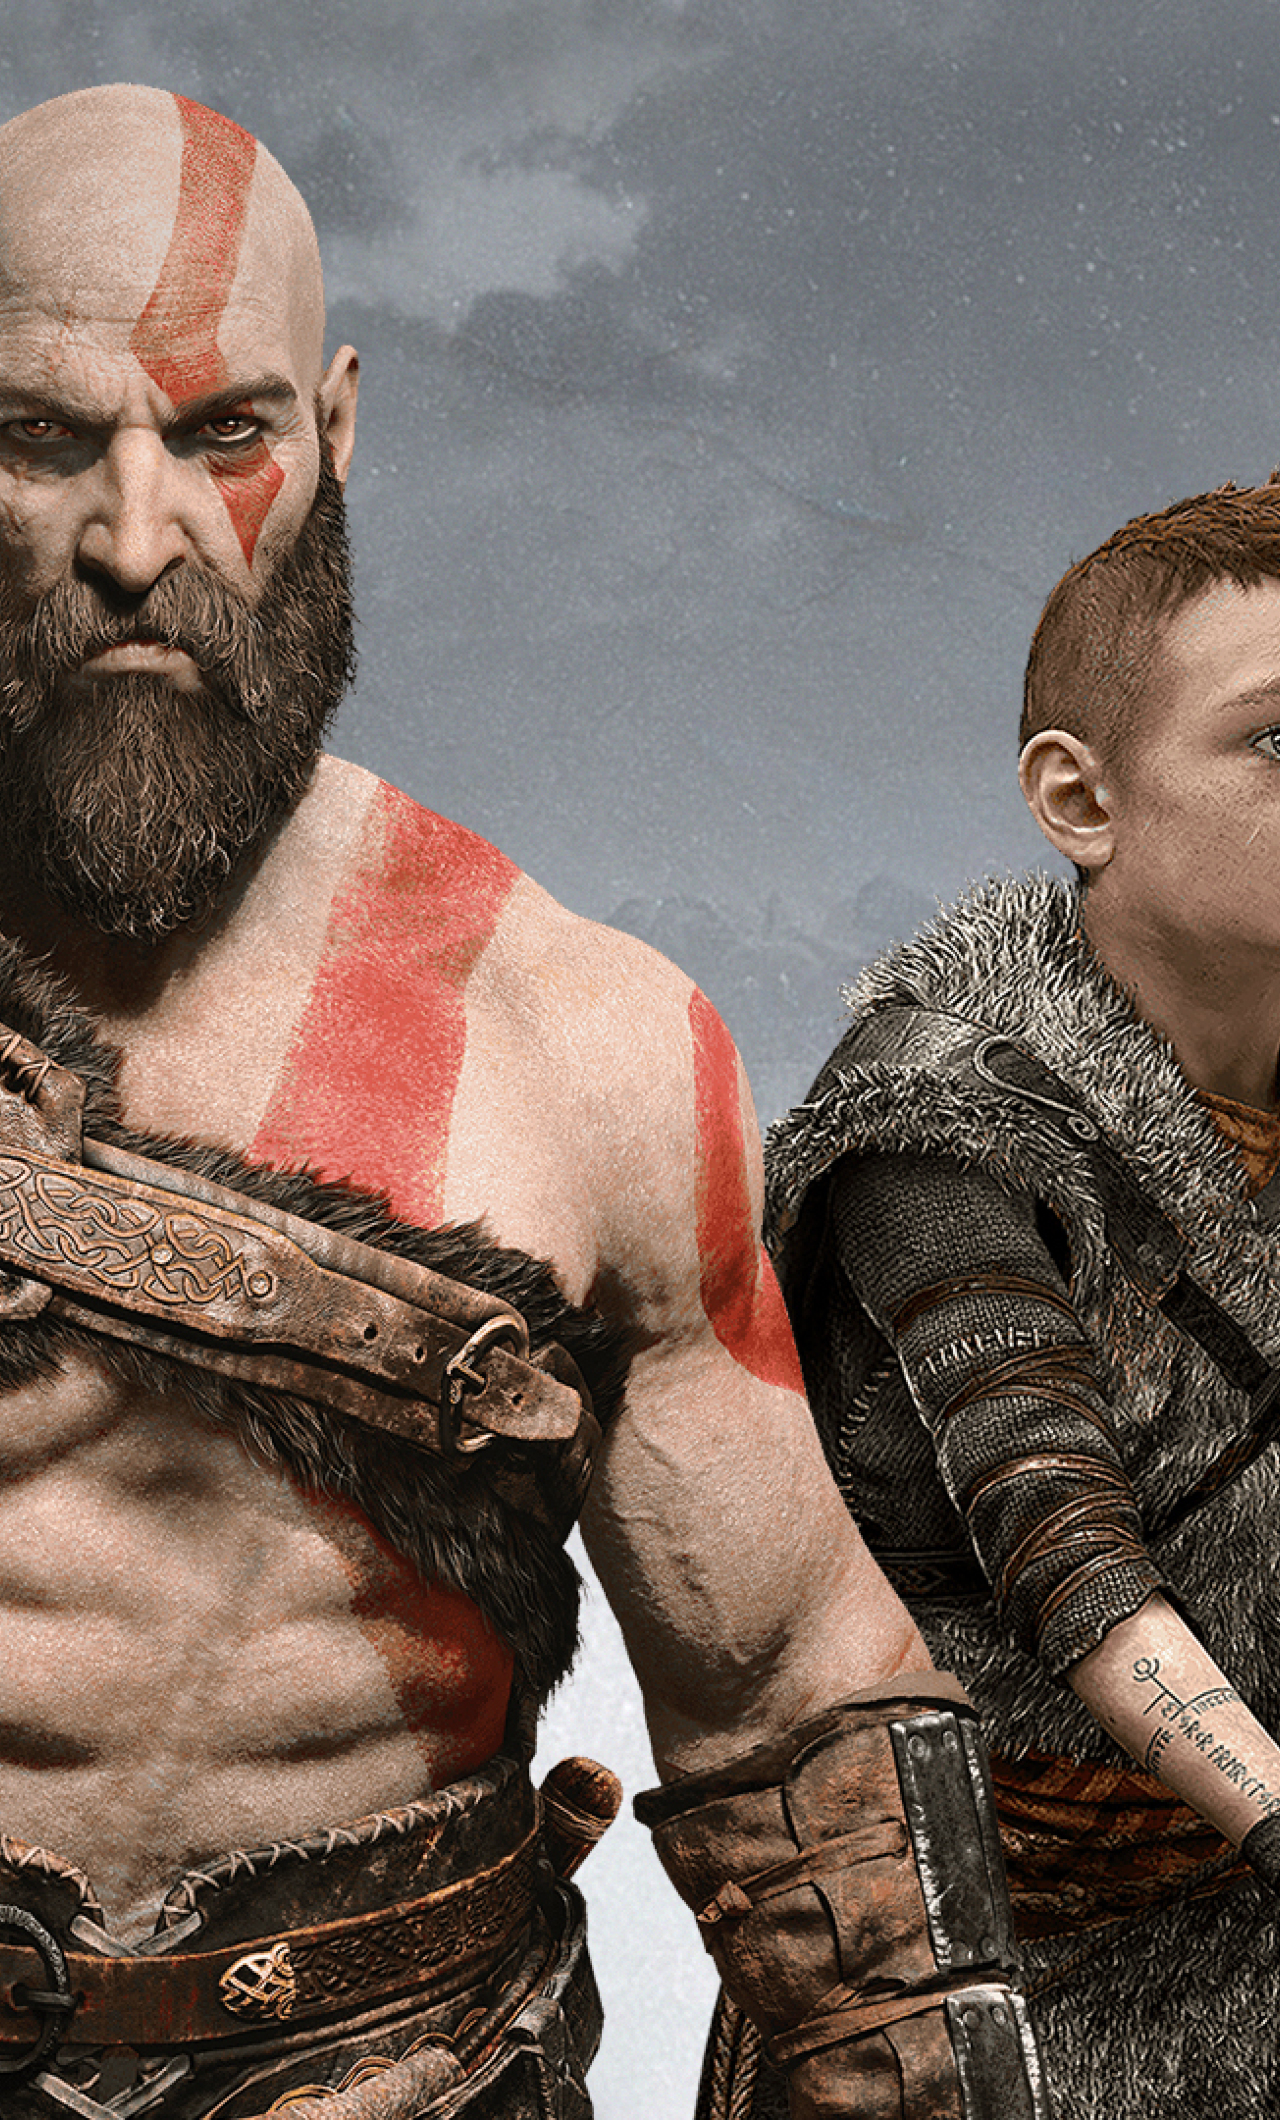 Download Atreus Kratos God Of War 2018 480x854 Resolution Full HD